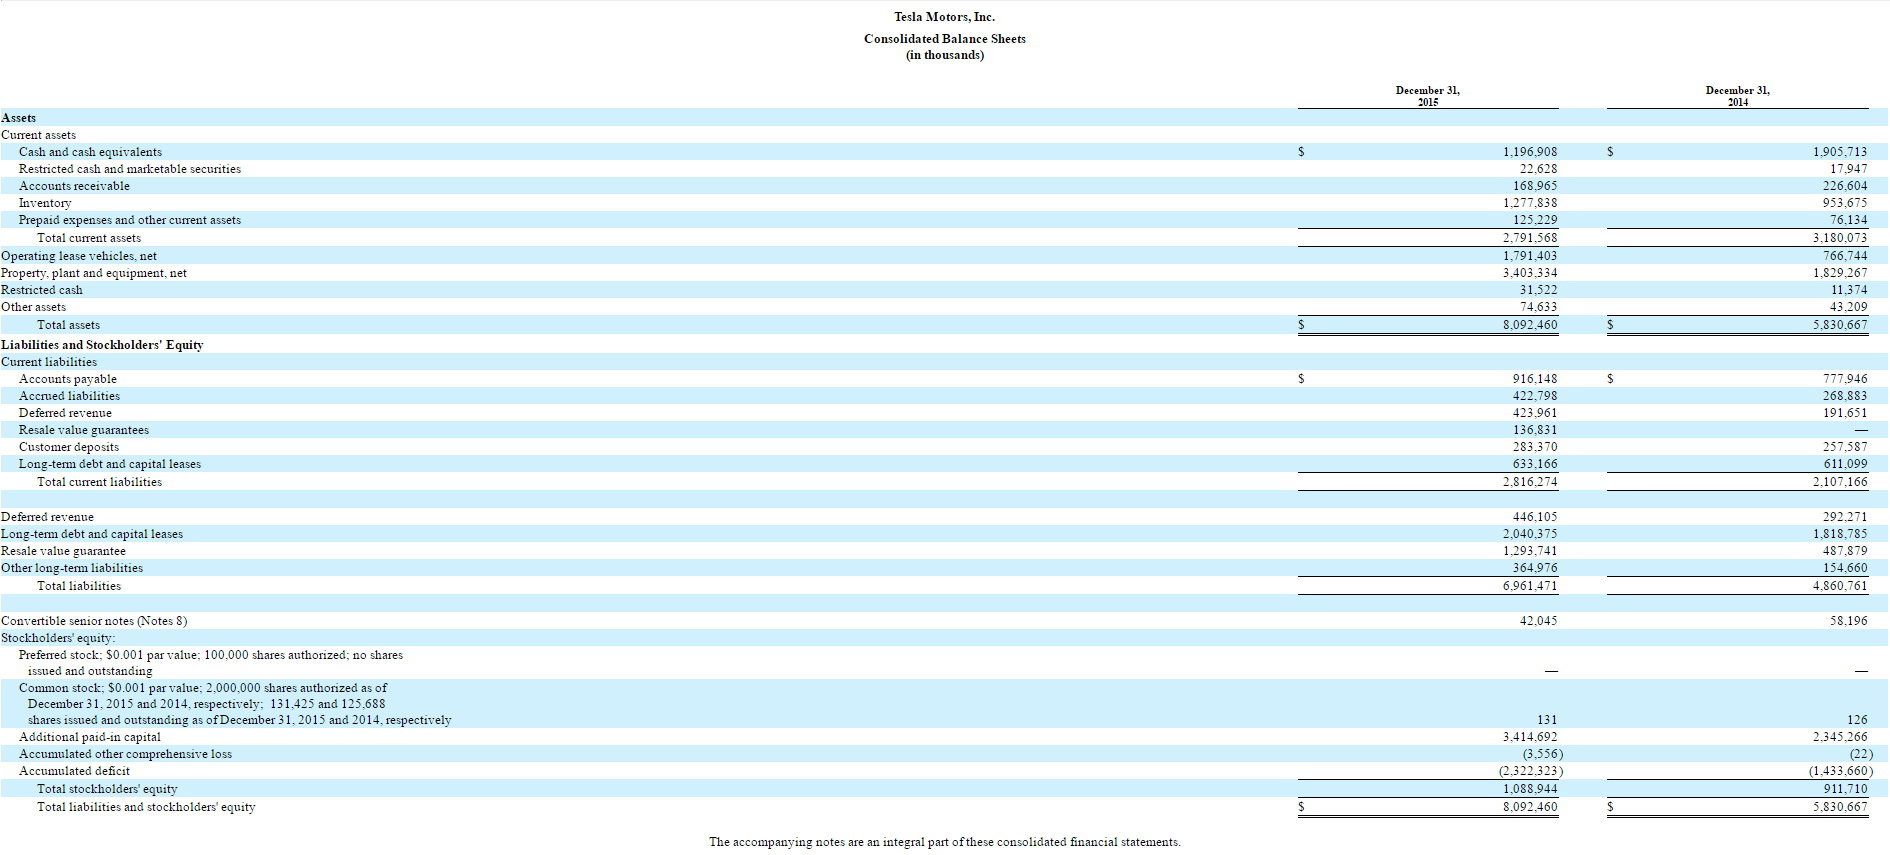 Capital Gains Worksheet 2014 Sharebrowse – Capital Gains Worksheet 2014